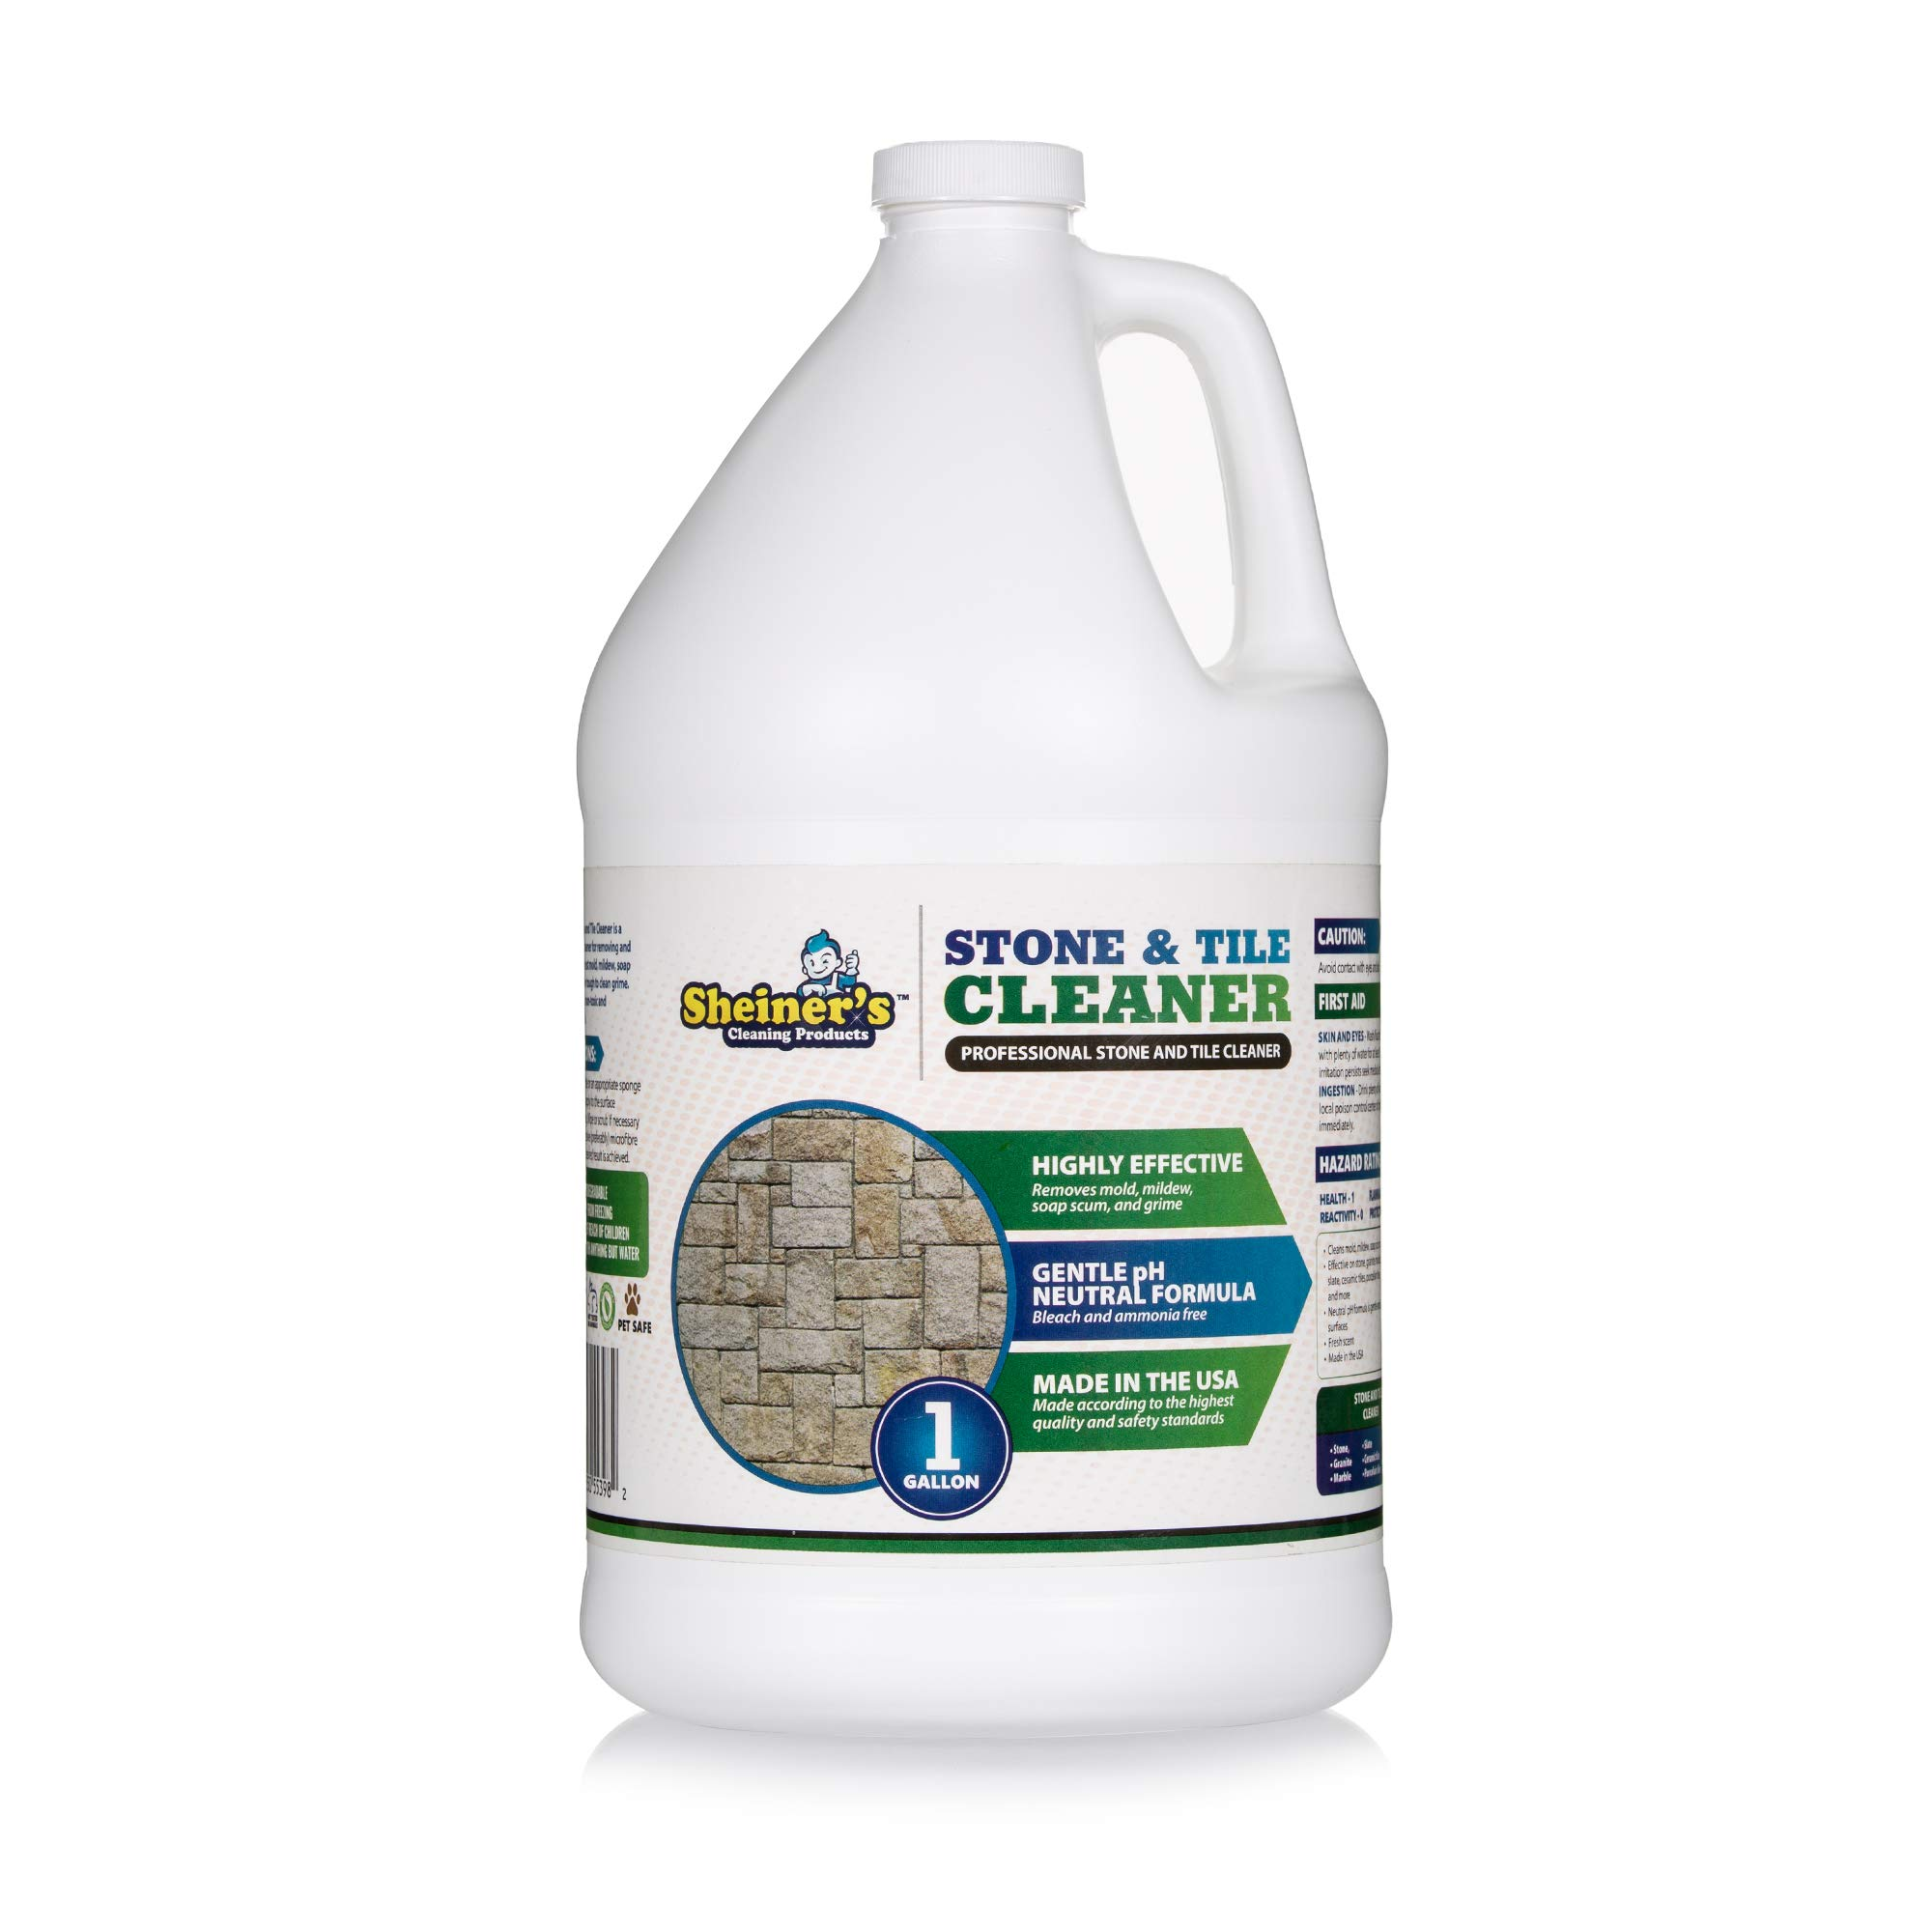 Sheiner's Stone & Tile Cleaner, Heavy Duty Floor Cleaner for Grout, Laminate, Natural Stone, Marble, Granite, Polished Concrete, and Travertine Surfaces,1 Gallon